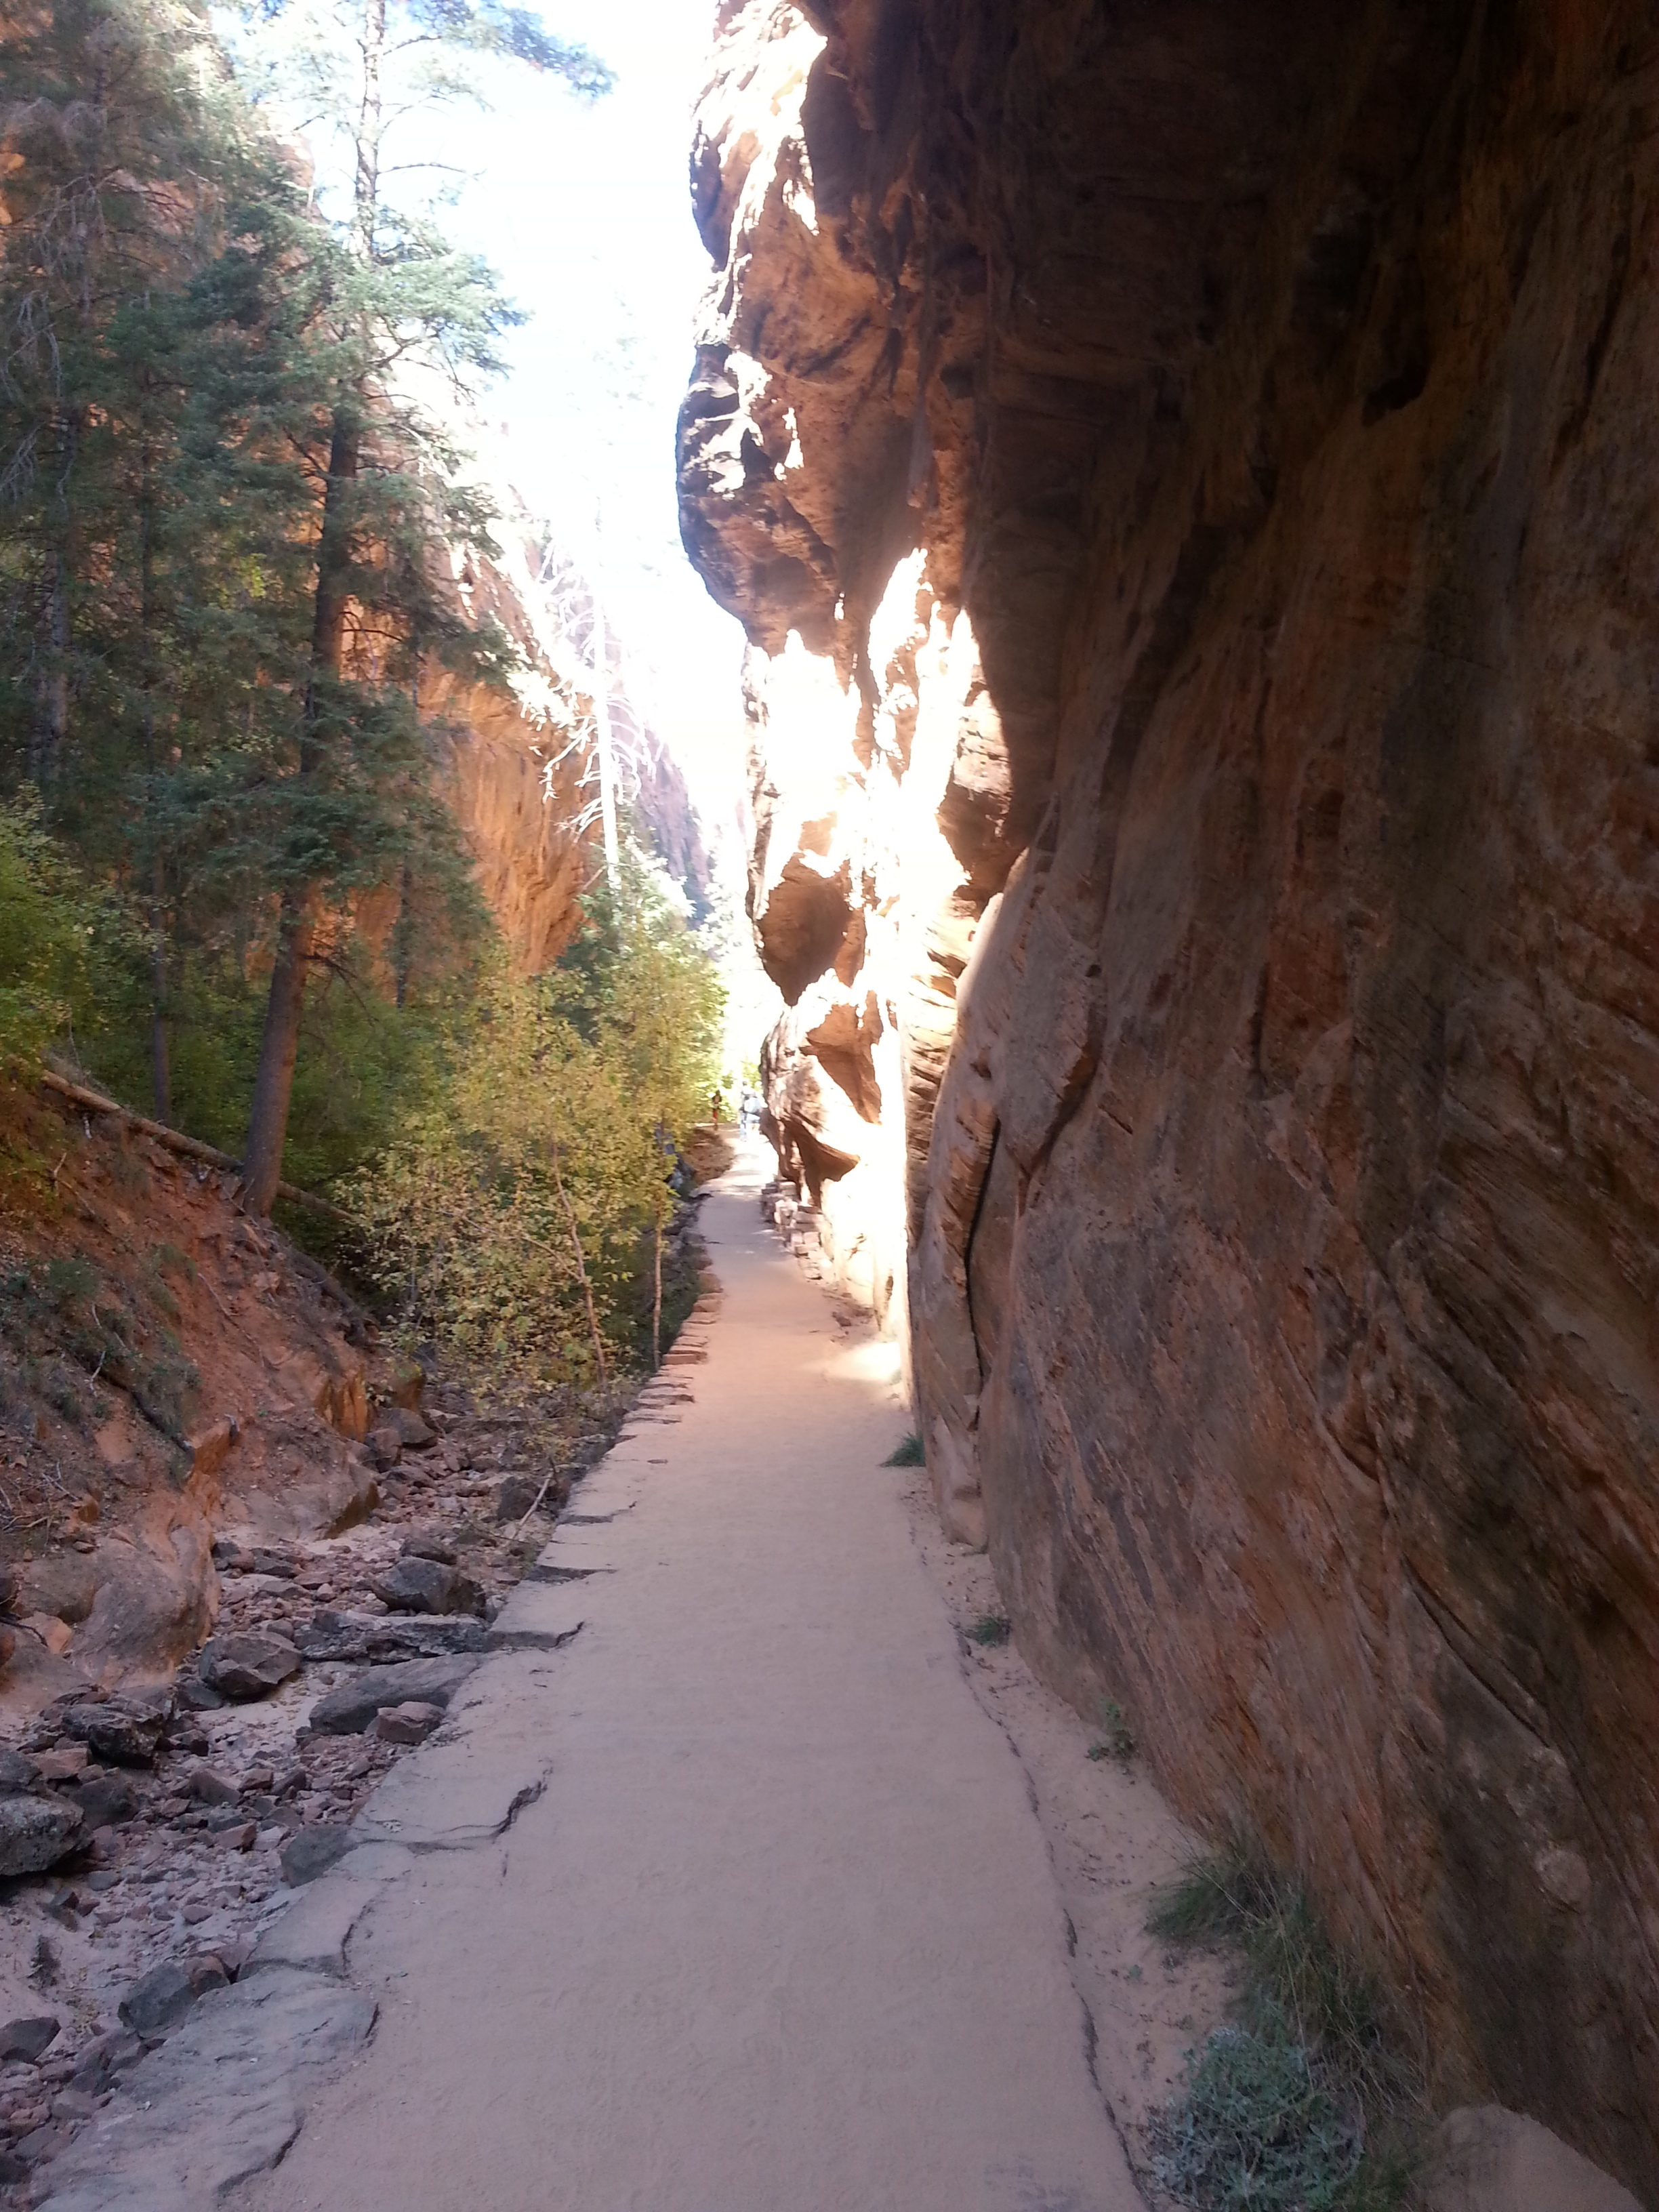 It starts from the Grotto Shuttle drop off in Zion Canyon and weaves its way up for the first two miles with decent elevation but a paved trail.